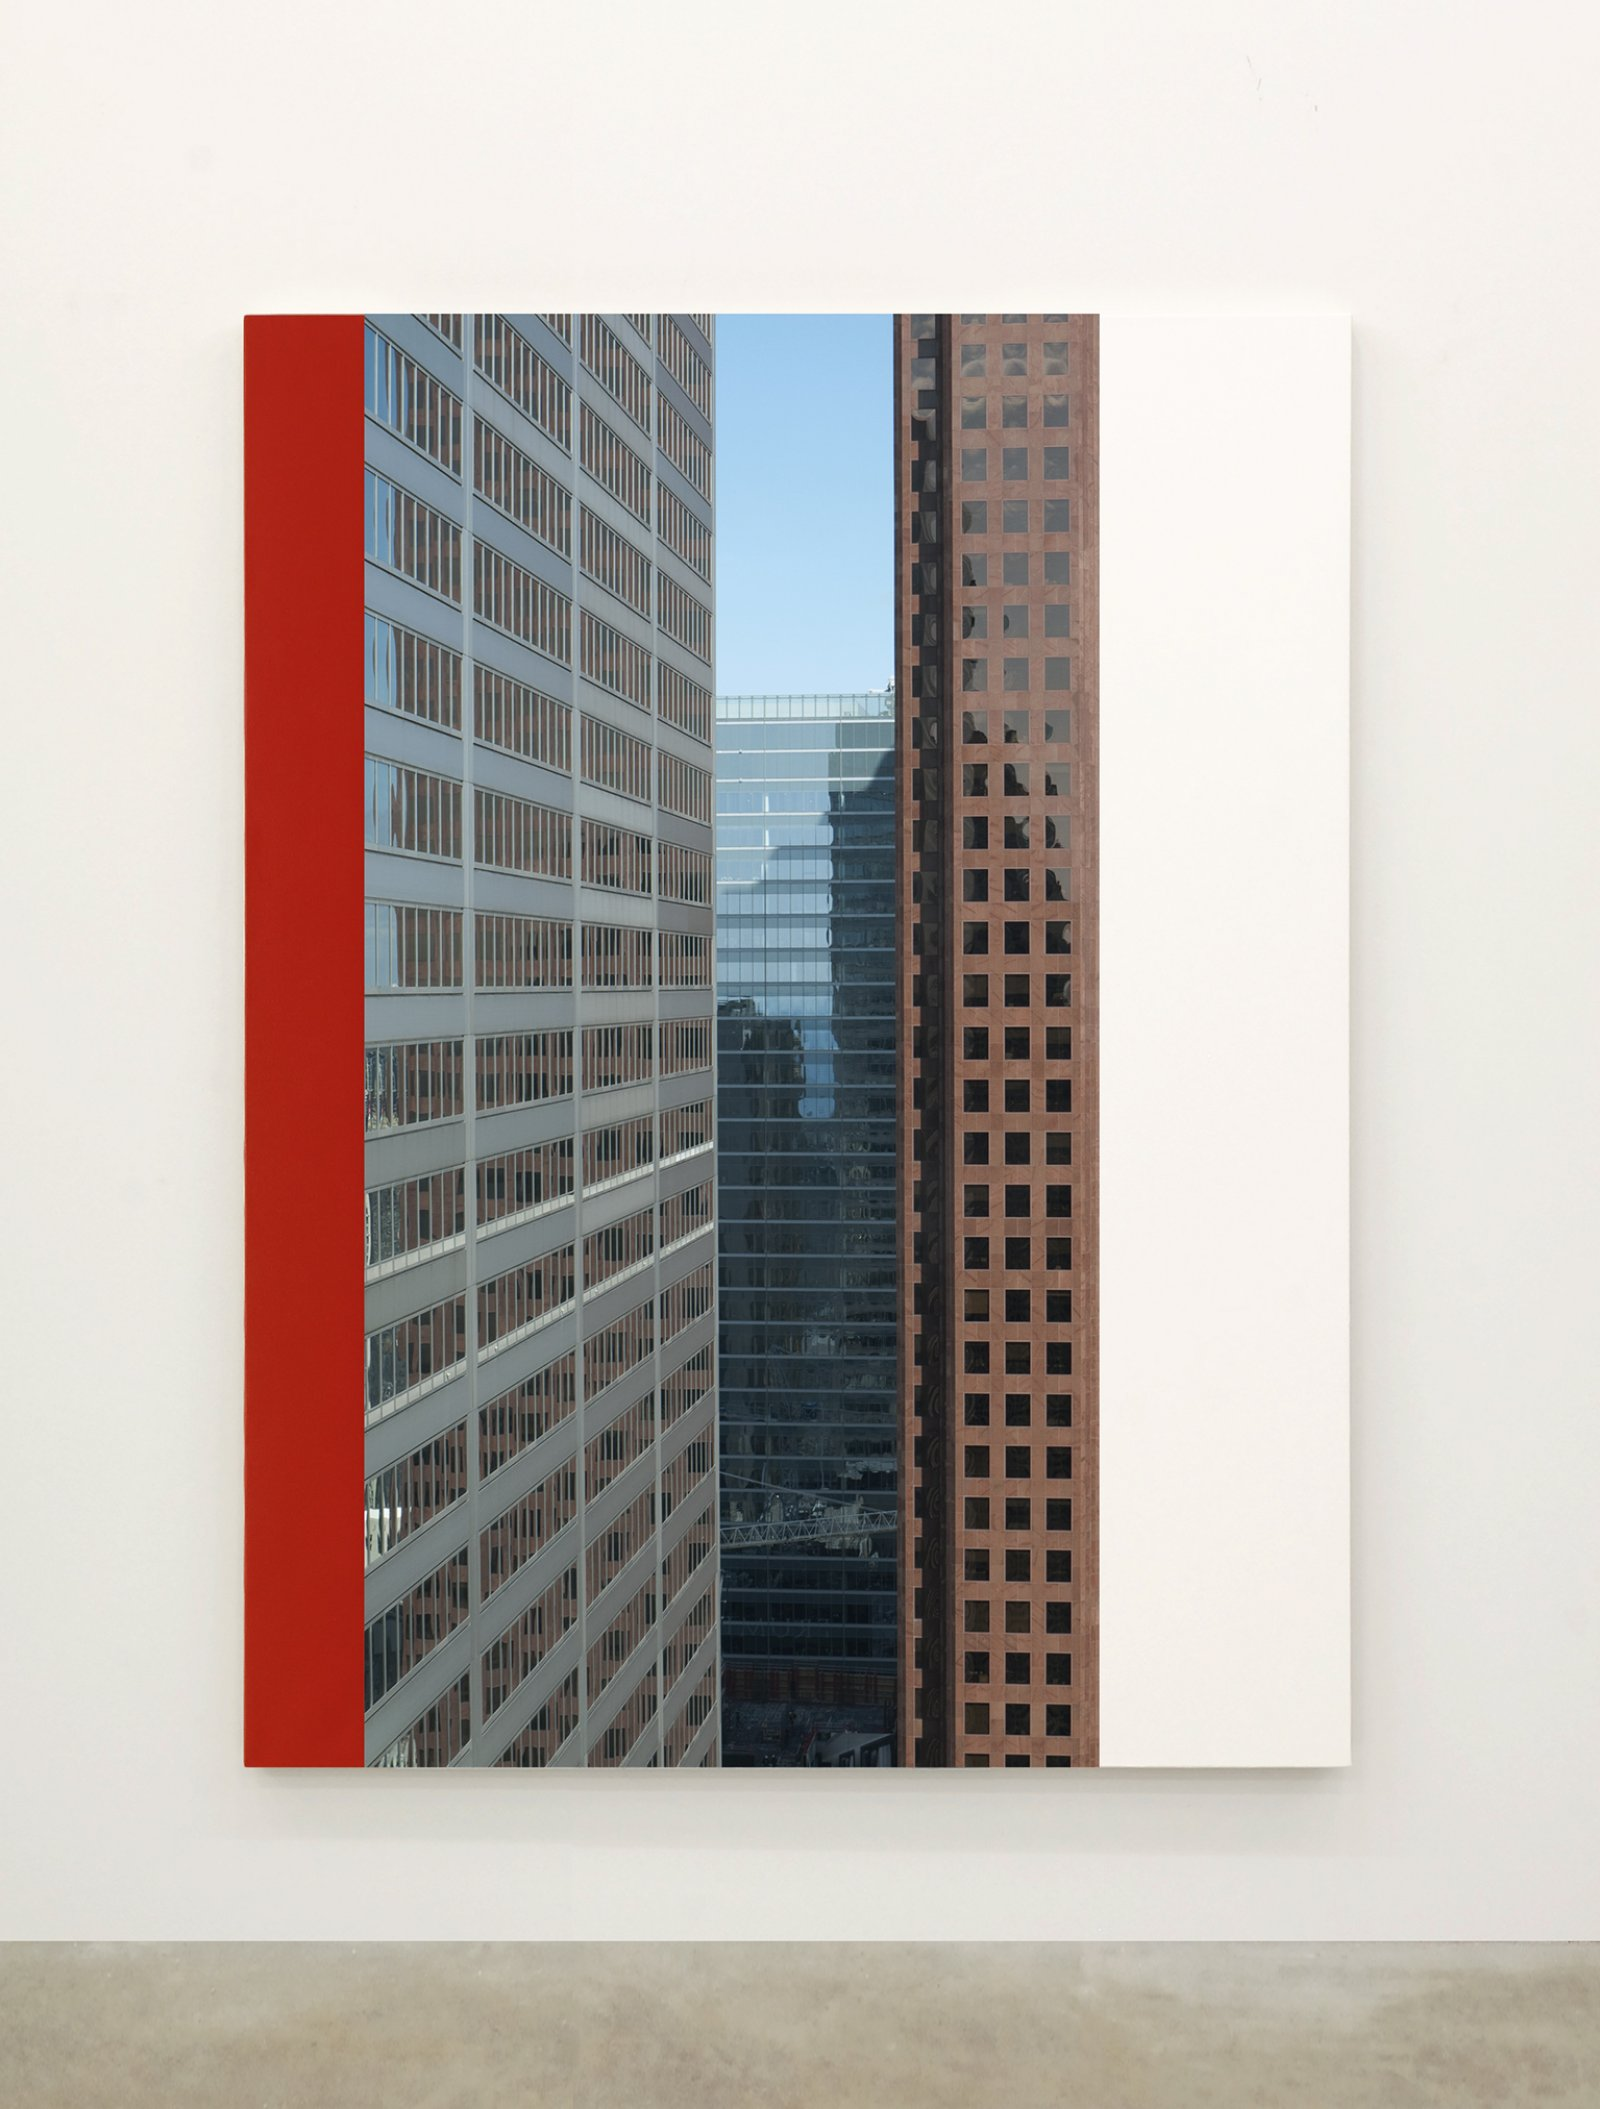 Ian Wallace,Abstract Painting VI(The Financial District), 2010,12 photolaminate with acrylic on canvas panels, each 96 x 72 in. (244 x 183 cm)